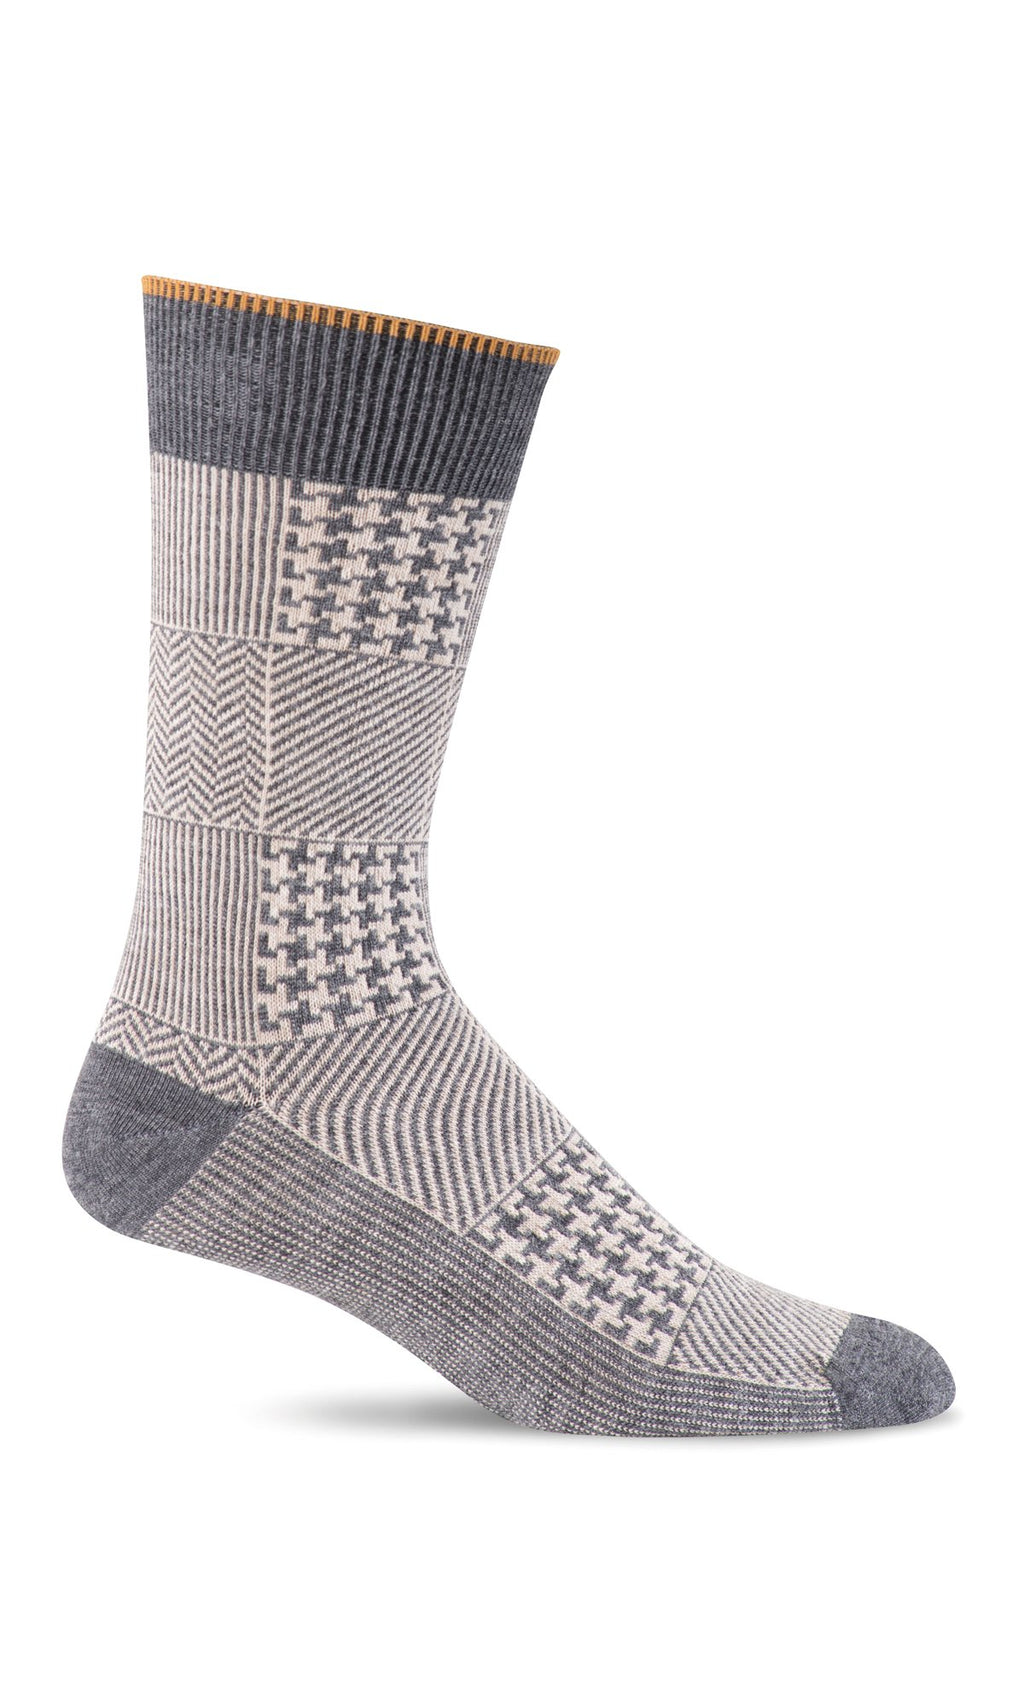 Men's Haberdashery | Essential Comfort Socks